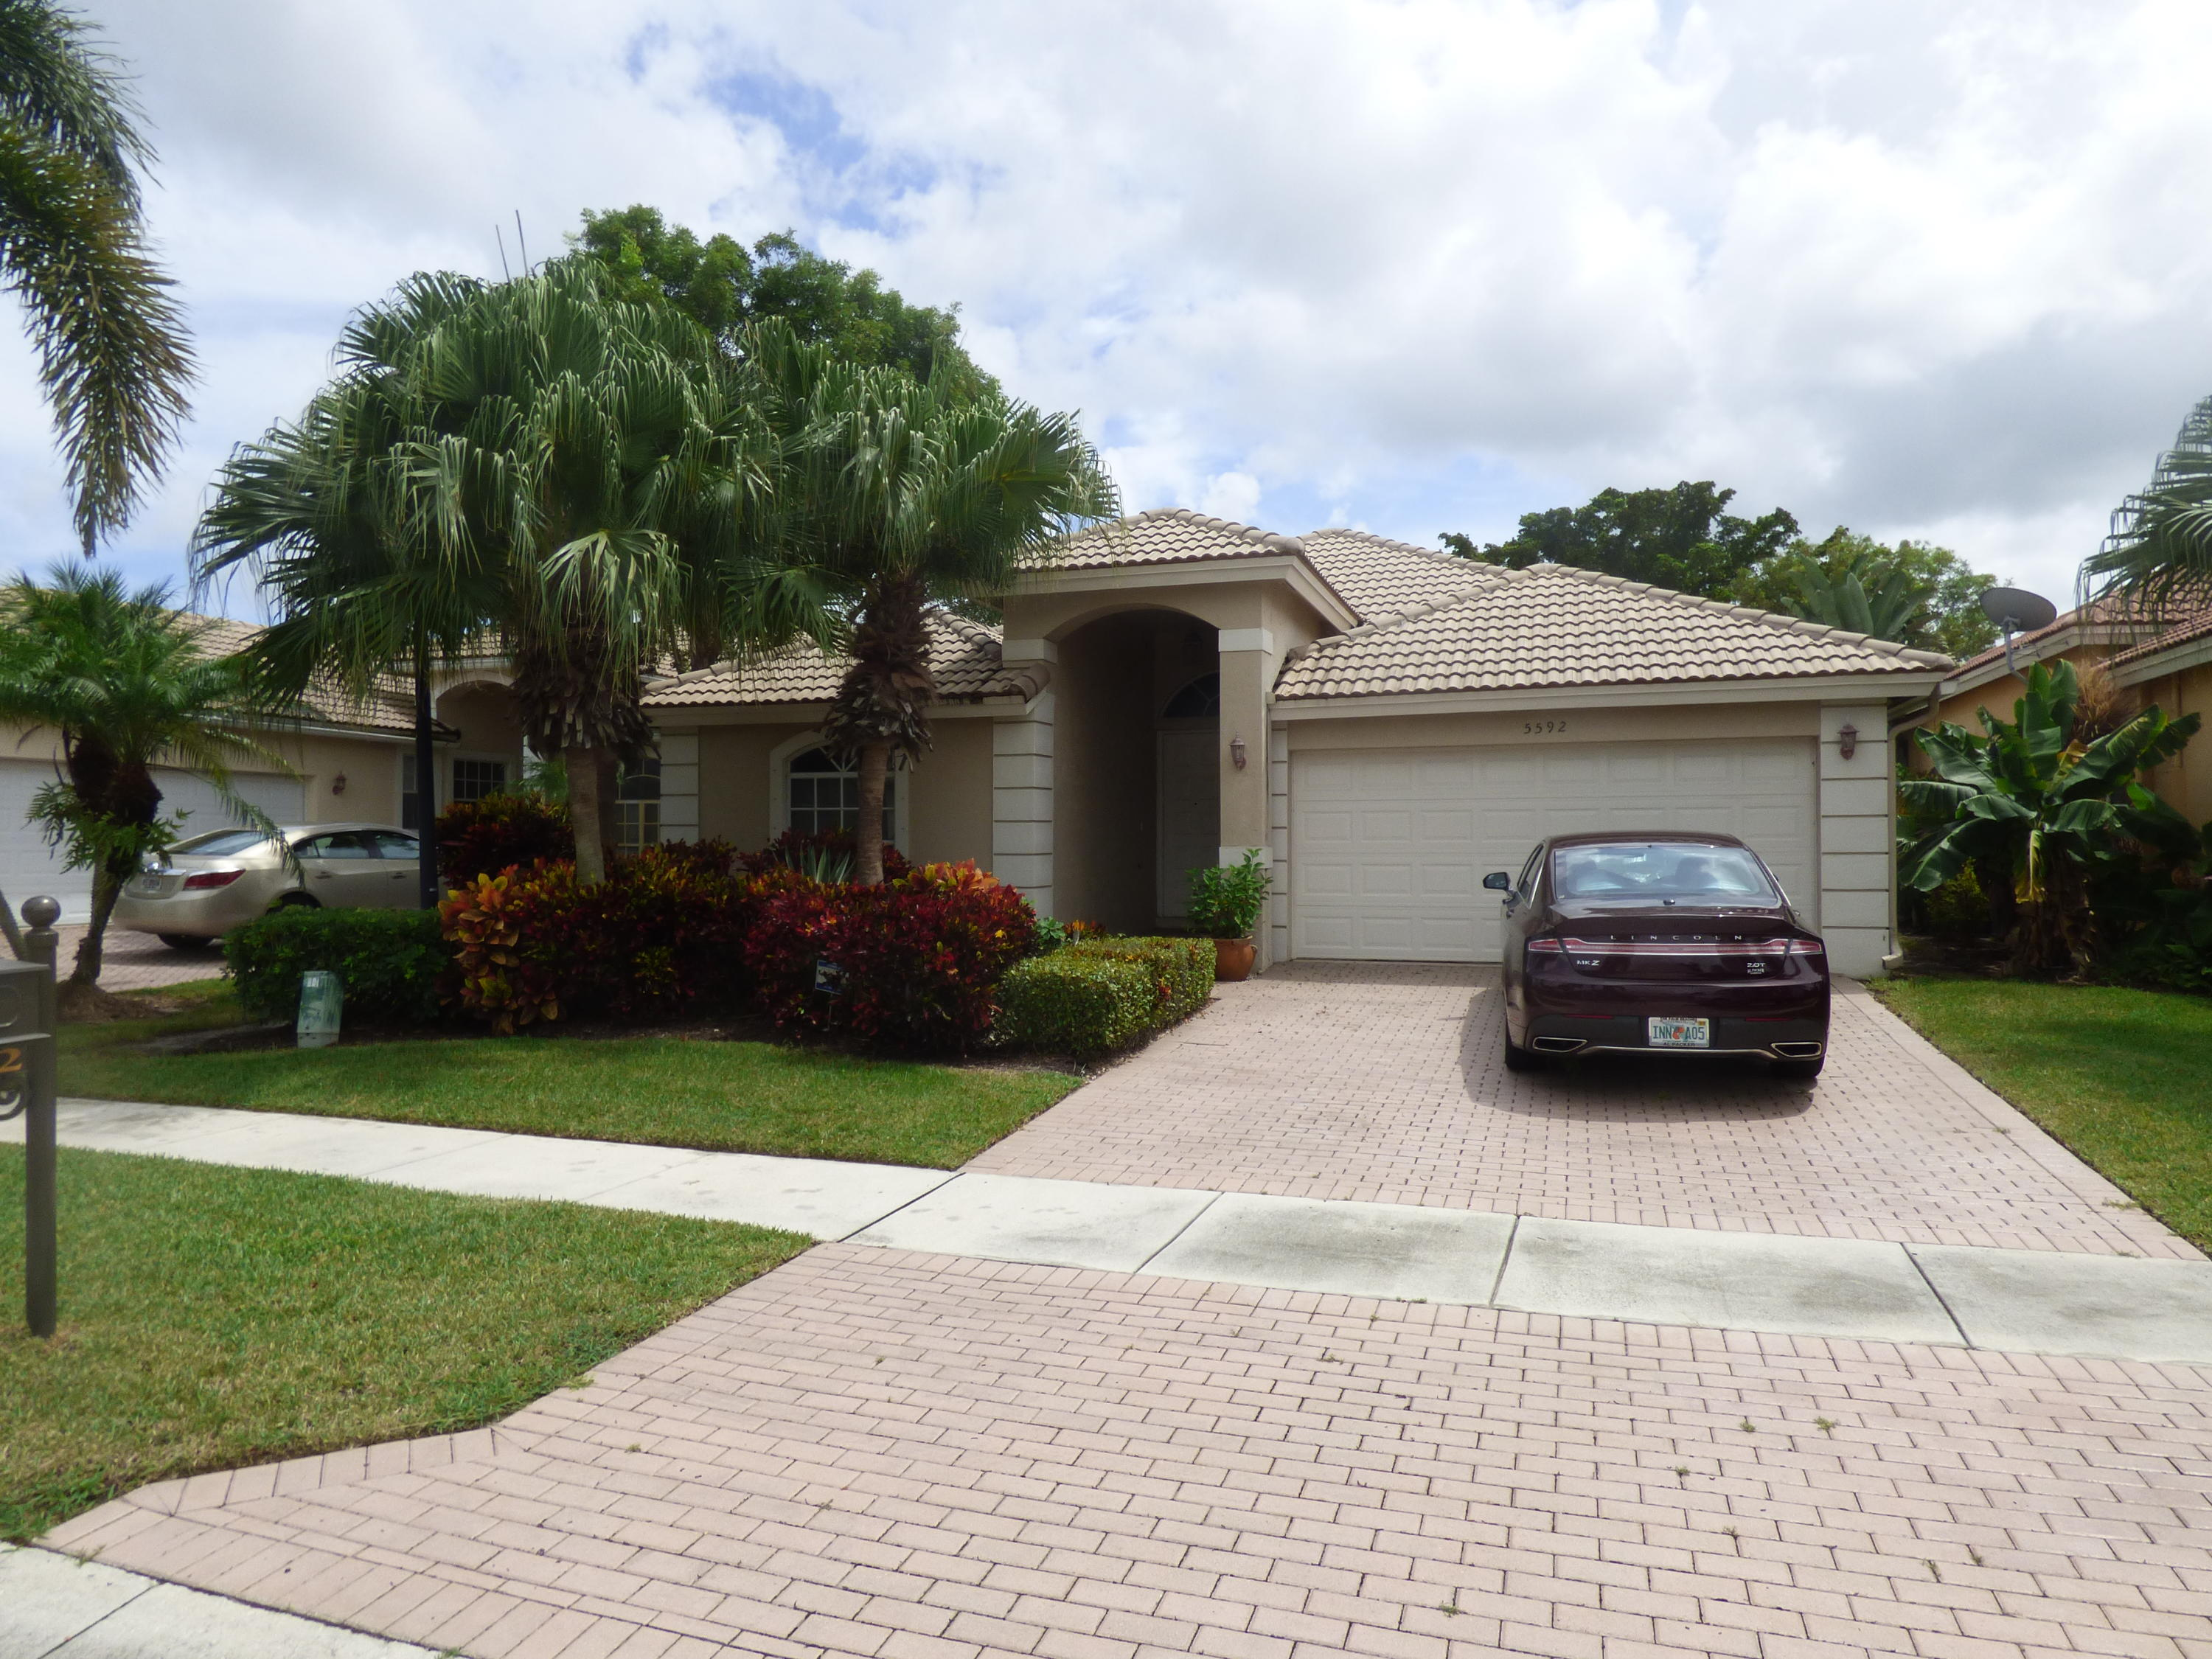 5592 Fountains Drive 33467 Lake Worth, FL 33467